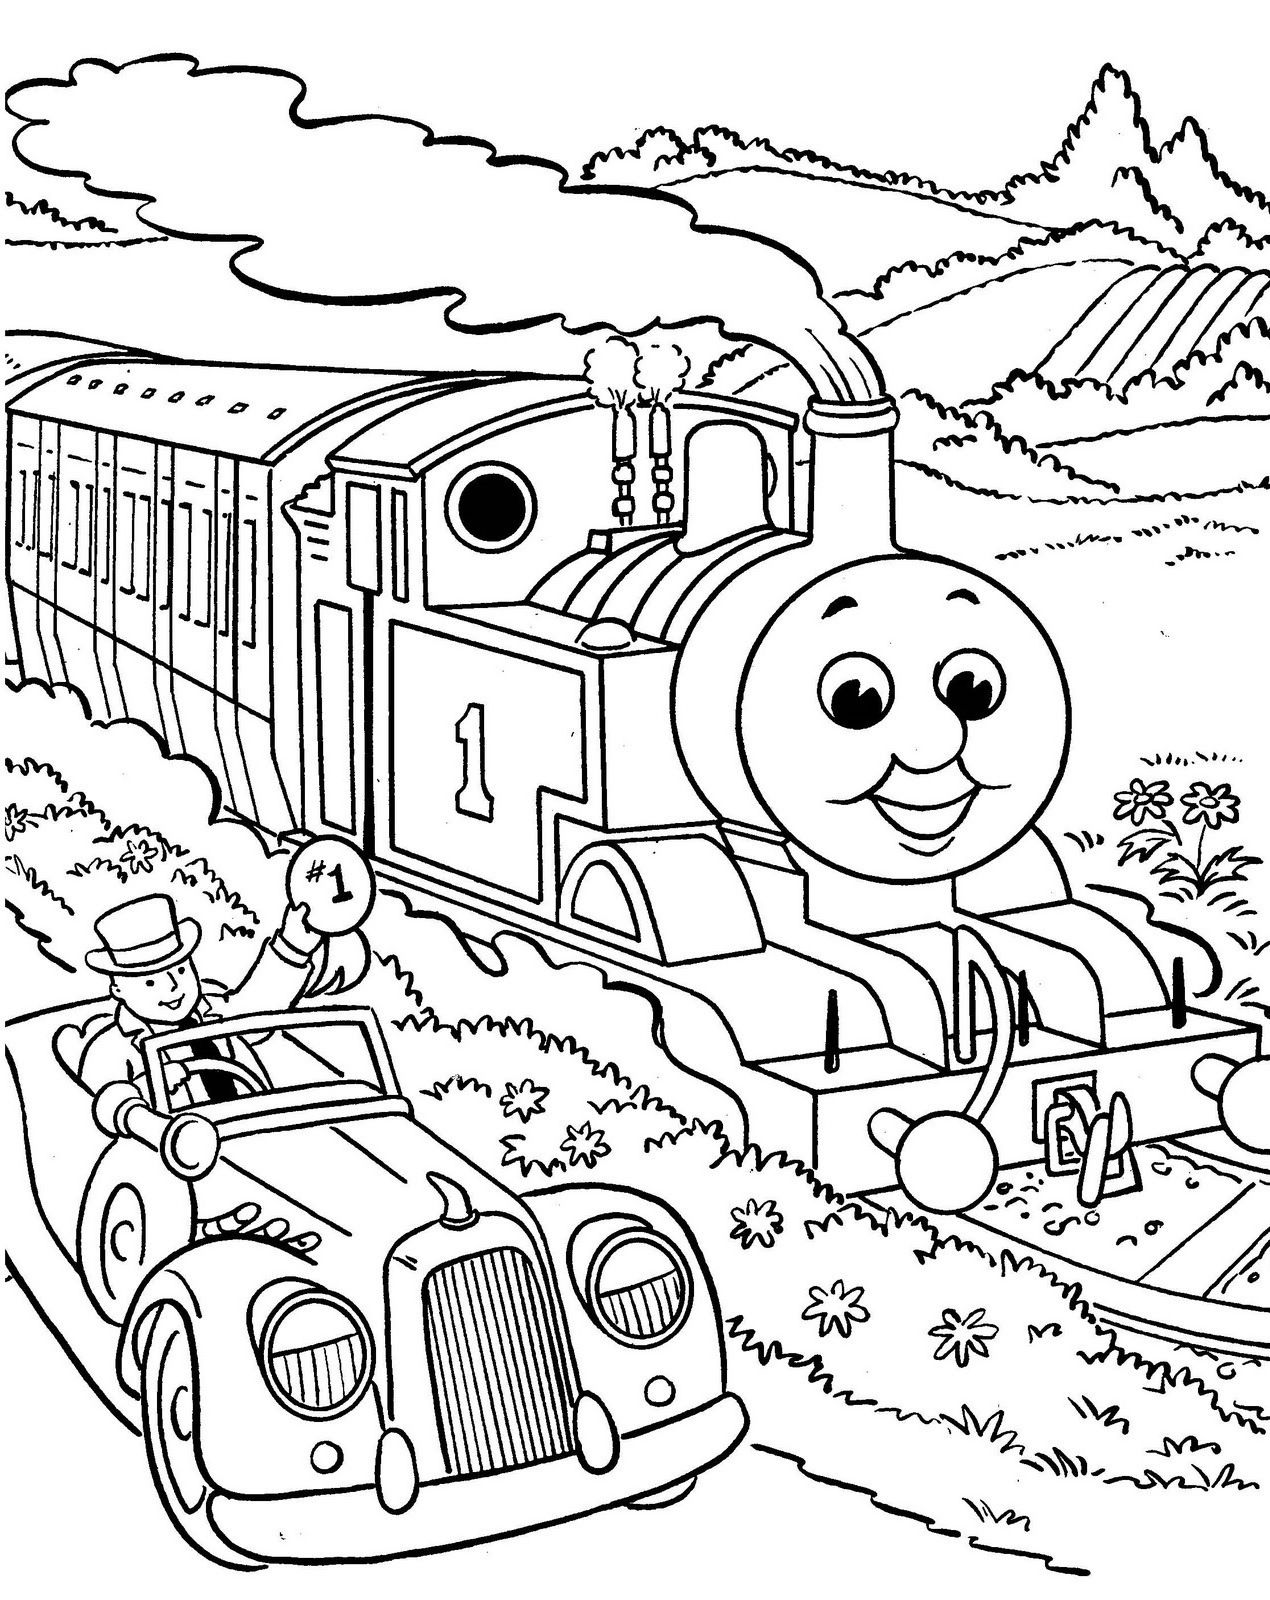 thomas and friends coloring sheets thomas coloring pages train coloring pages thomas and and thomas friends coloring sheets